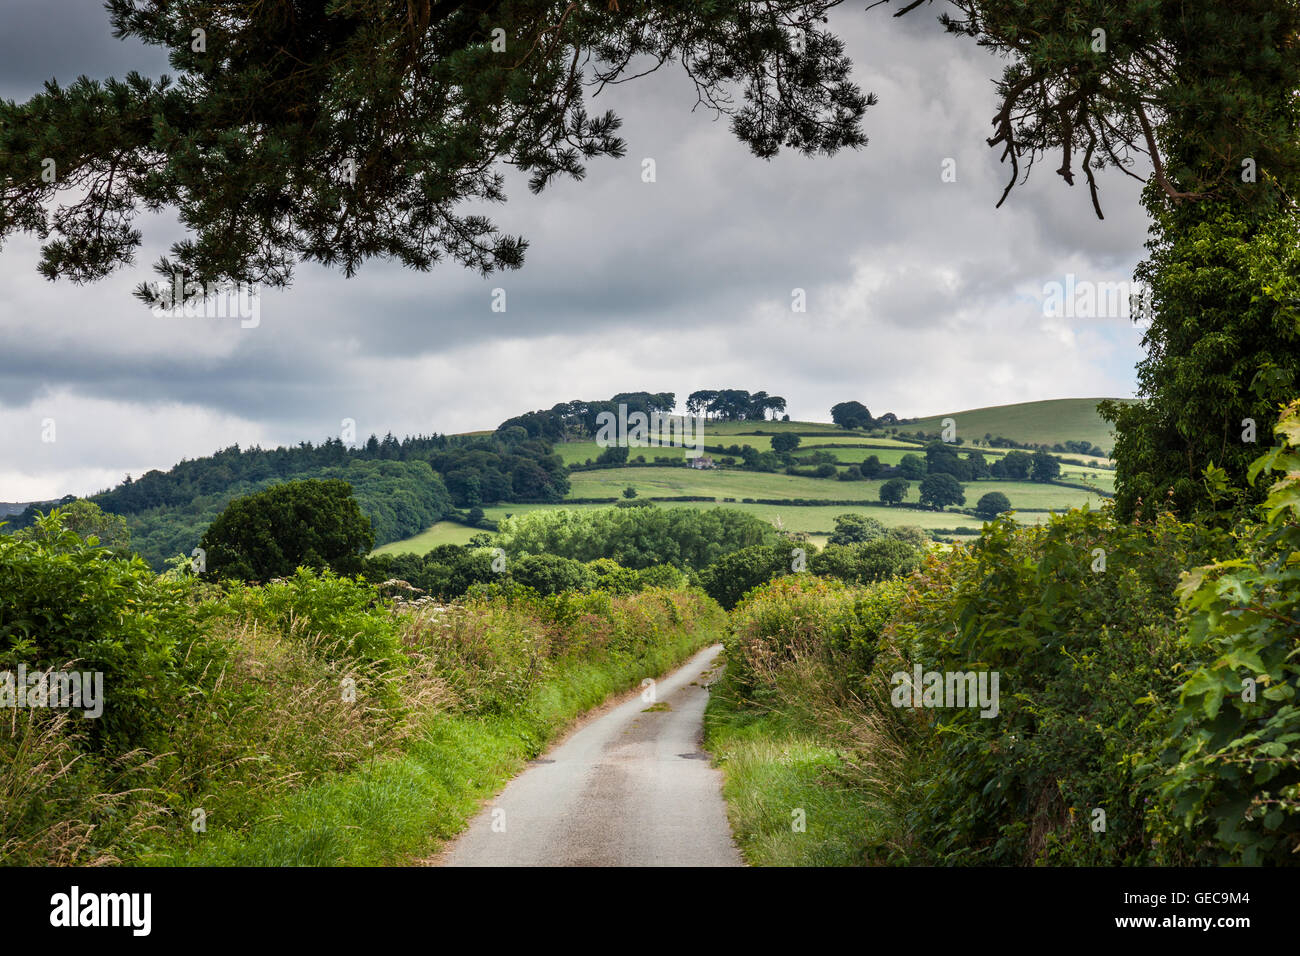 A lane from the village of More, leading towards the Linley Beeeches, lining the ridge of Linley Hill, Shropshire - Stock Image